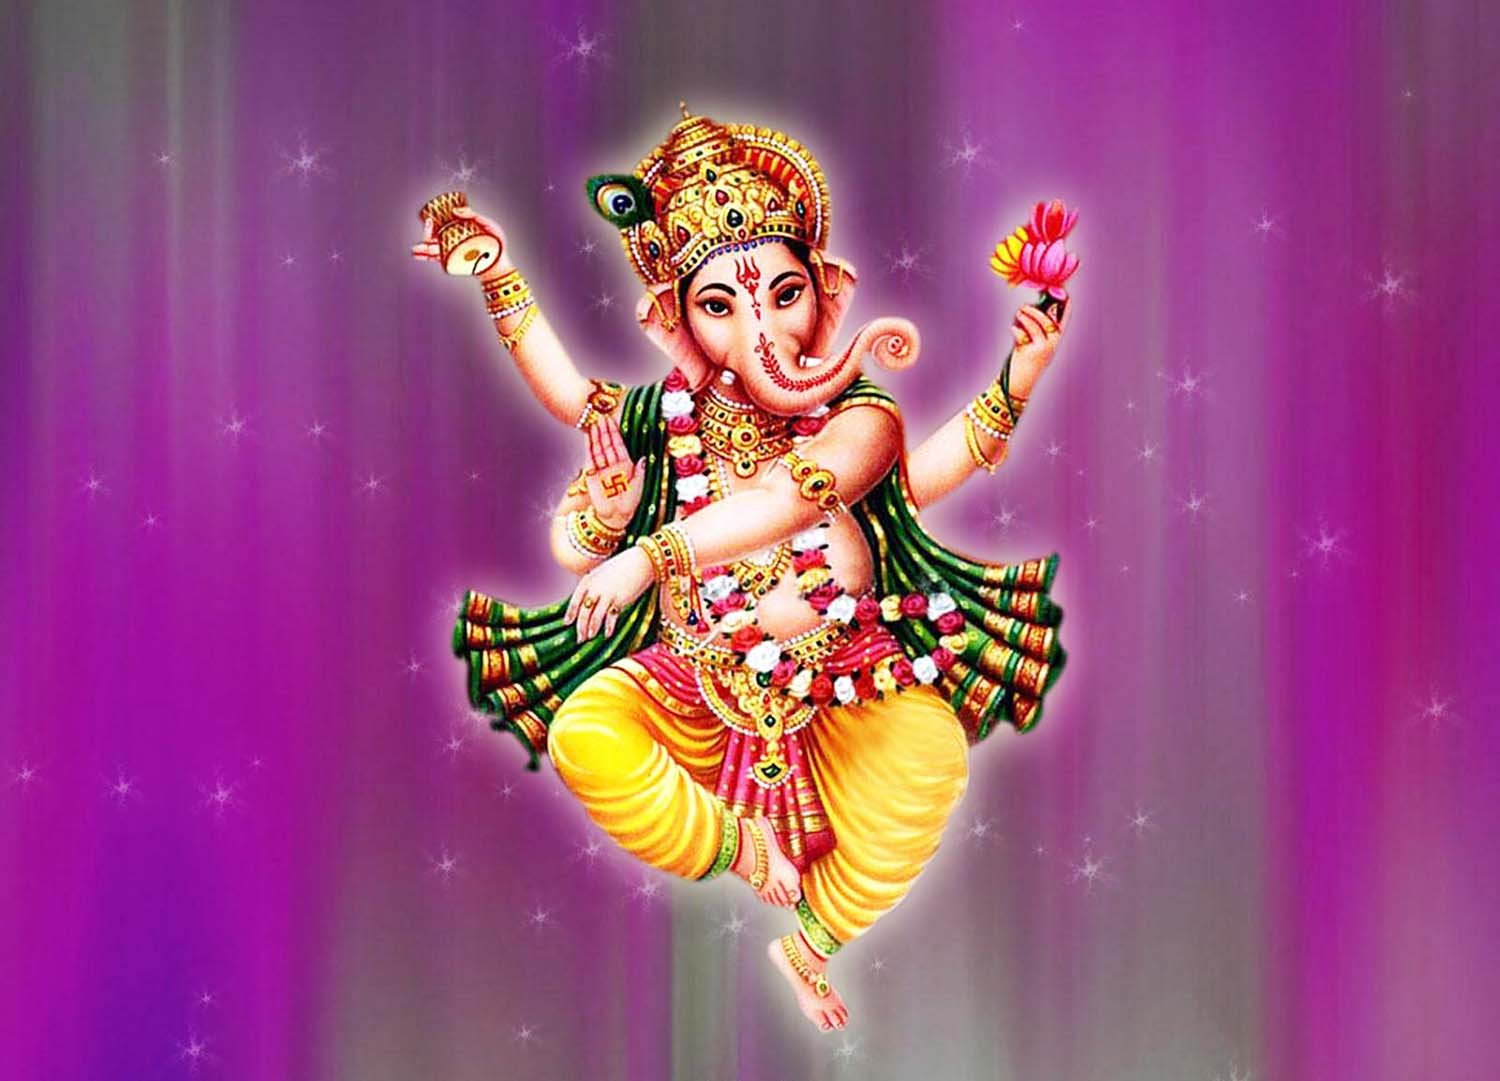 Gorgeous wallpaper God Ganesh!